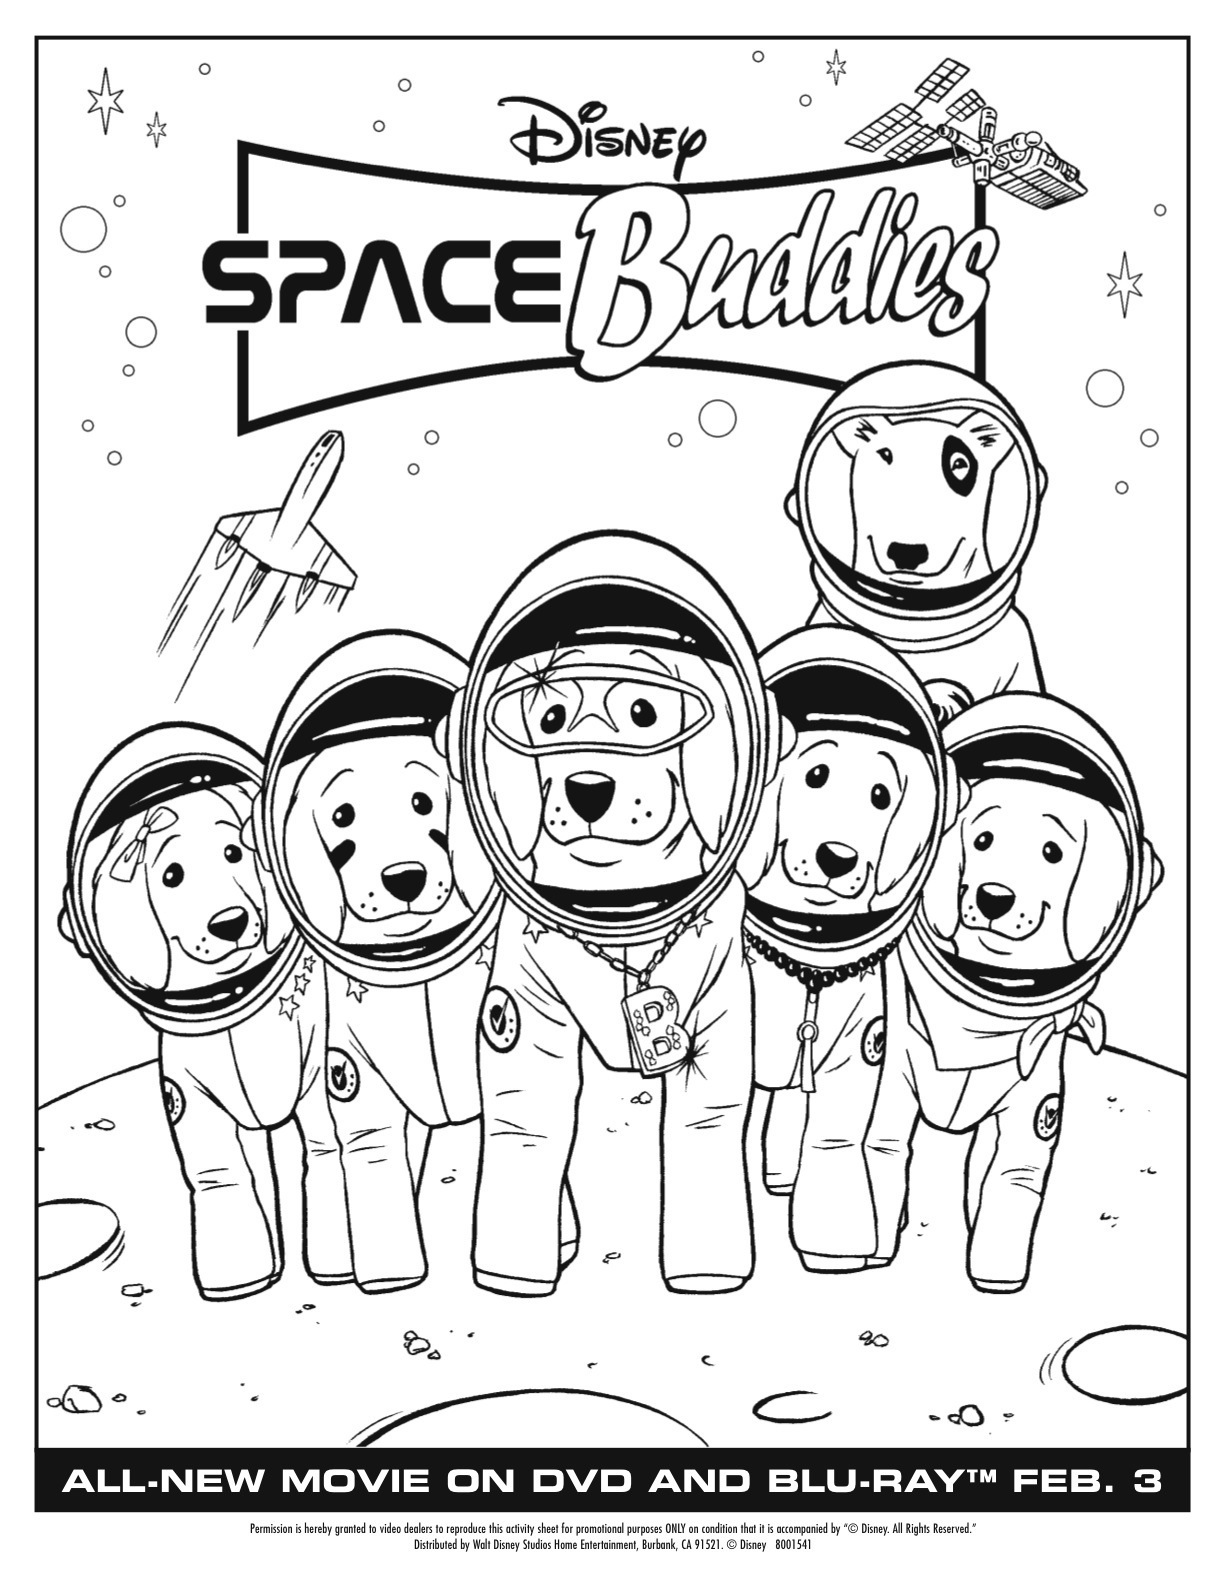 Santa Buddies Coloring Pages With Spacebuddiesplay Movie Snow Photo Background Wallpapers Images